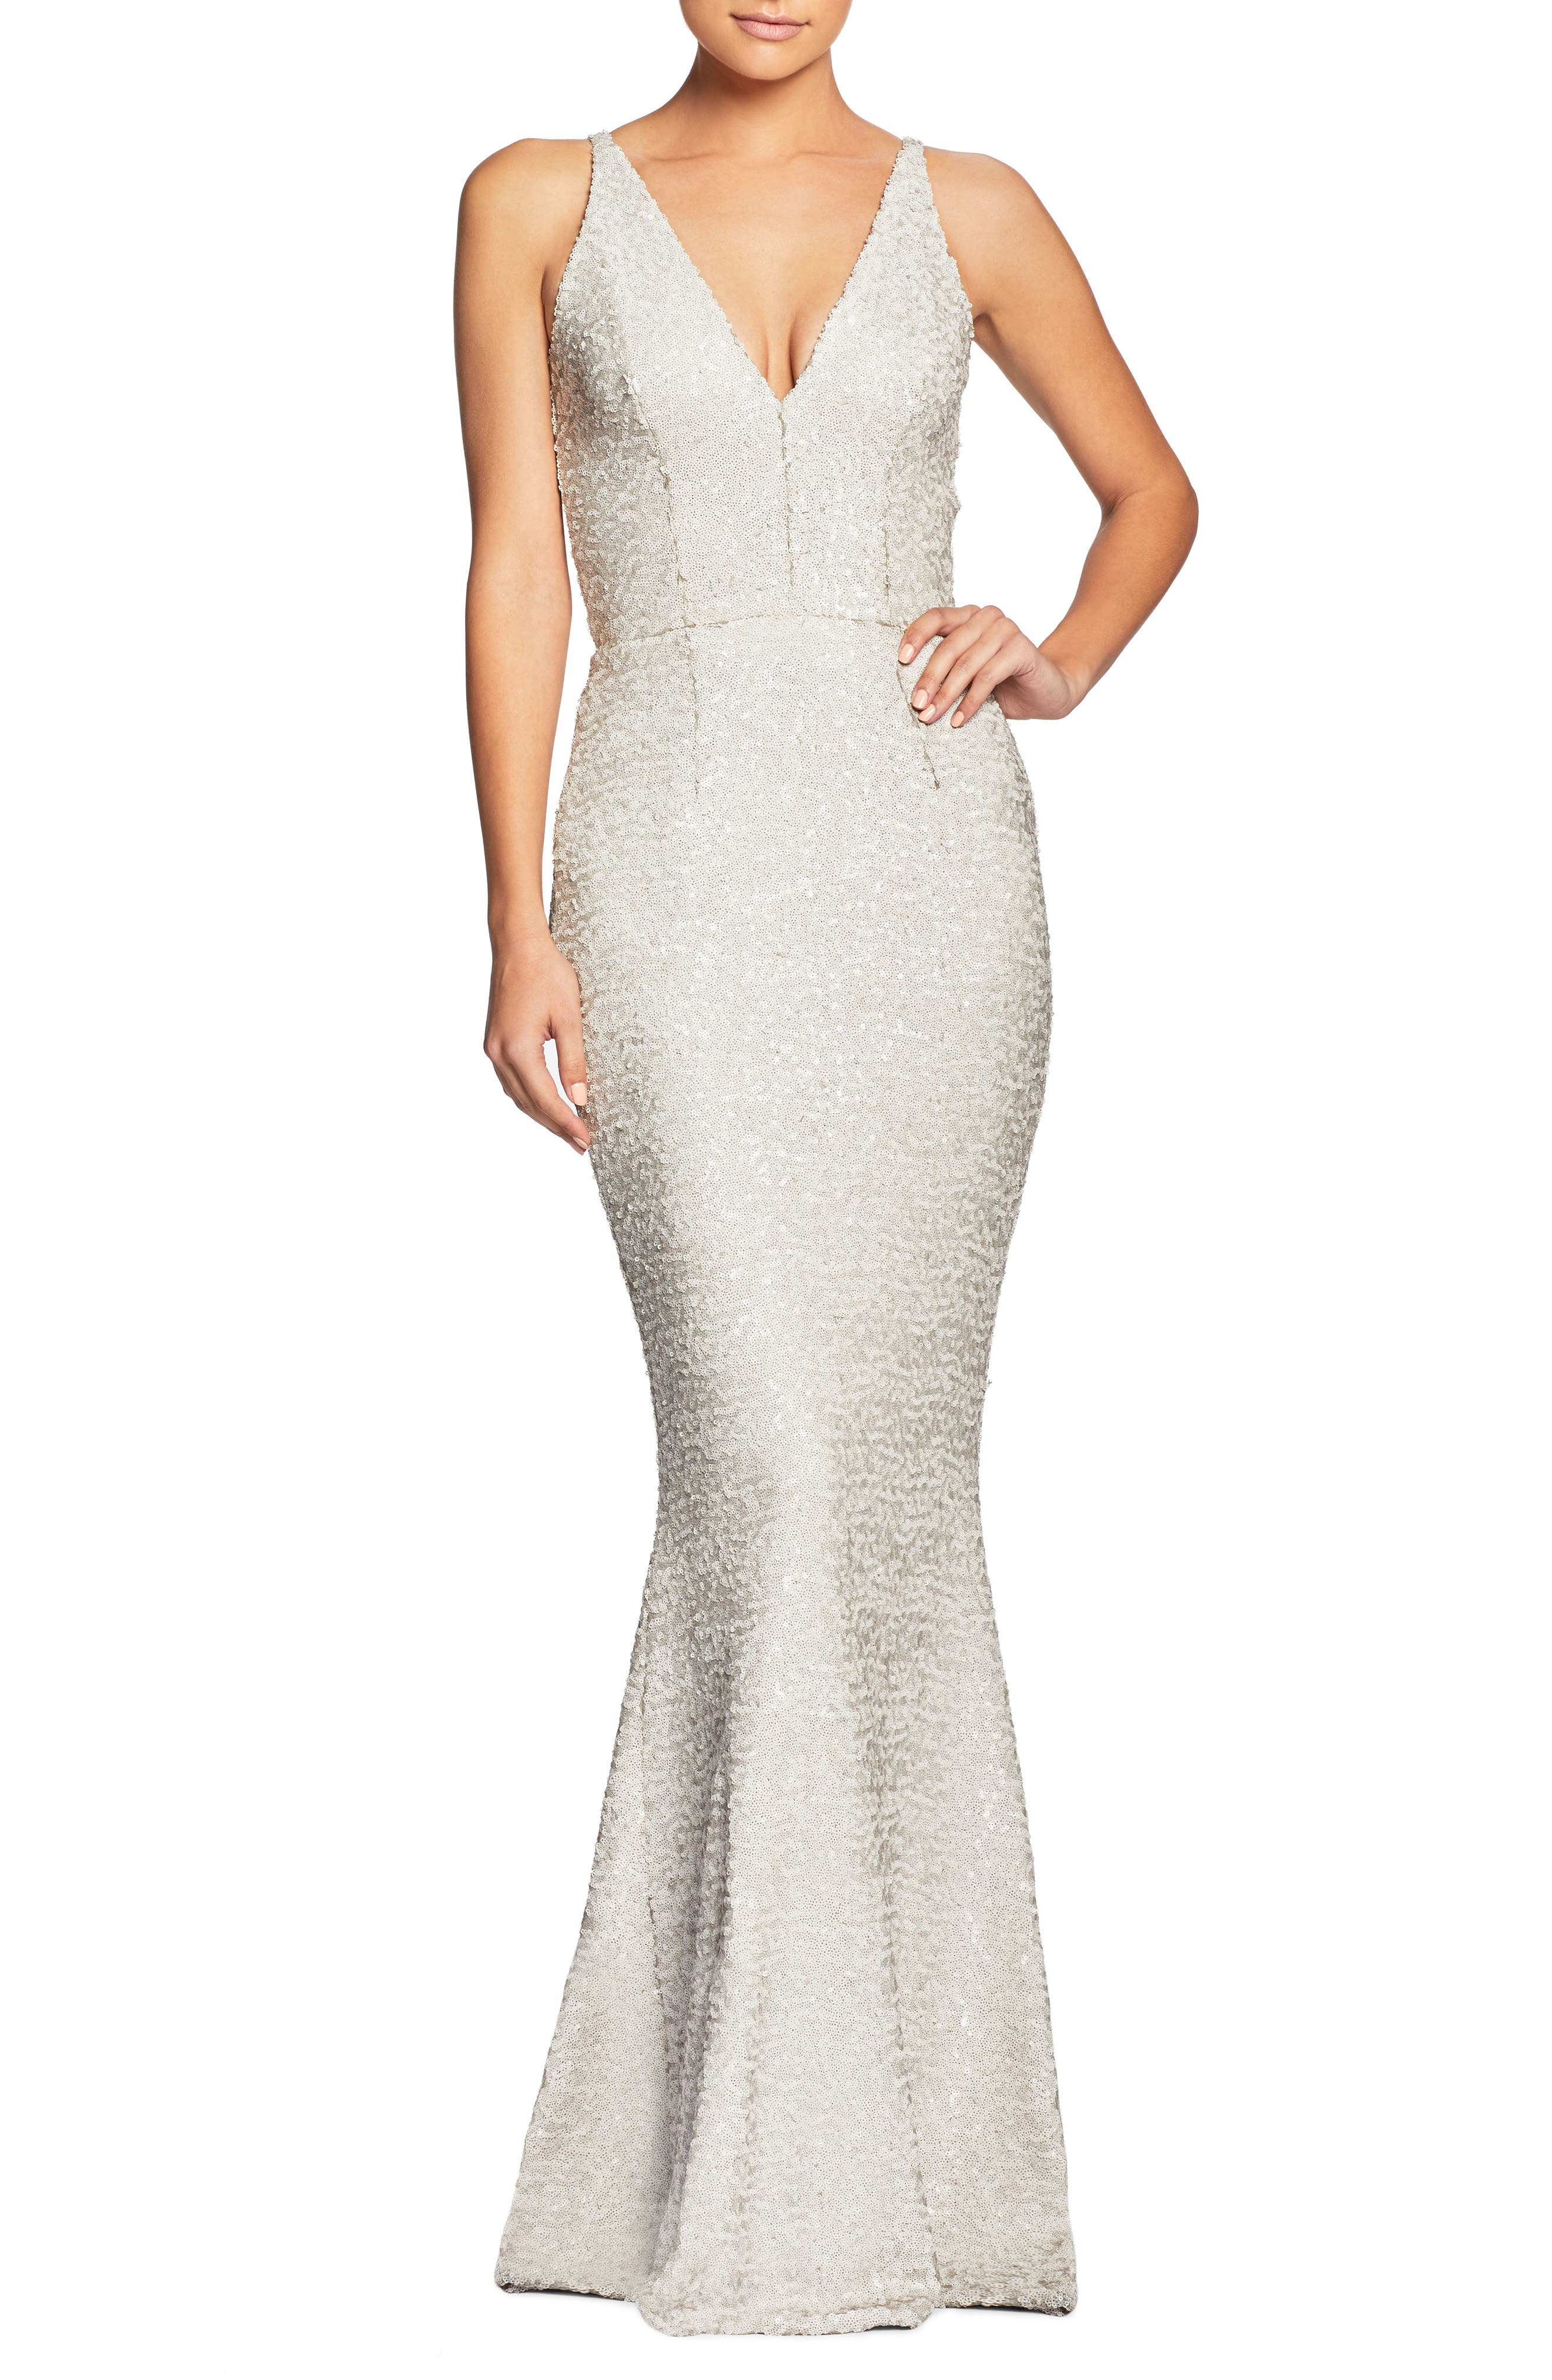 Dress The Population Harper Mermaid Gown, White